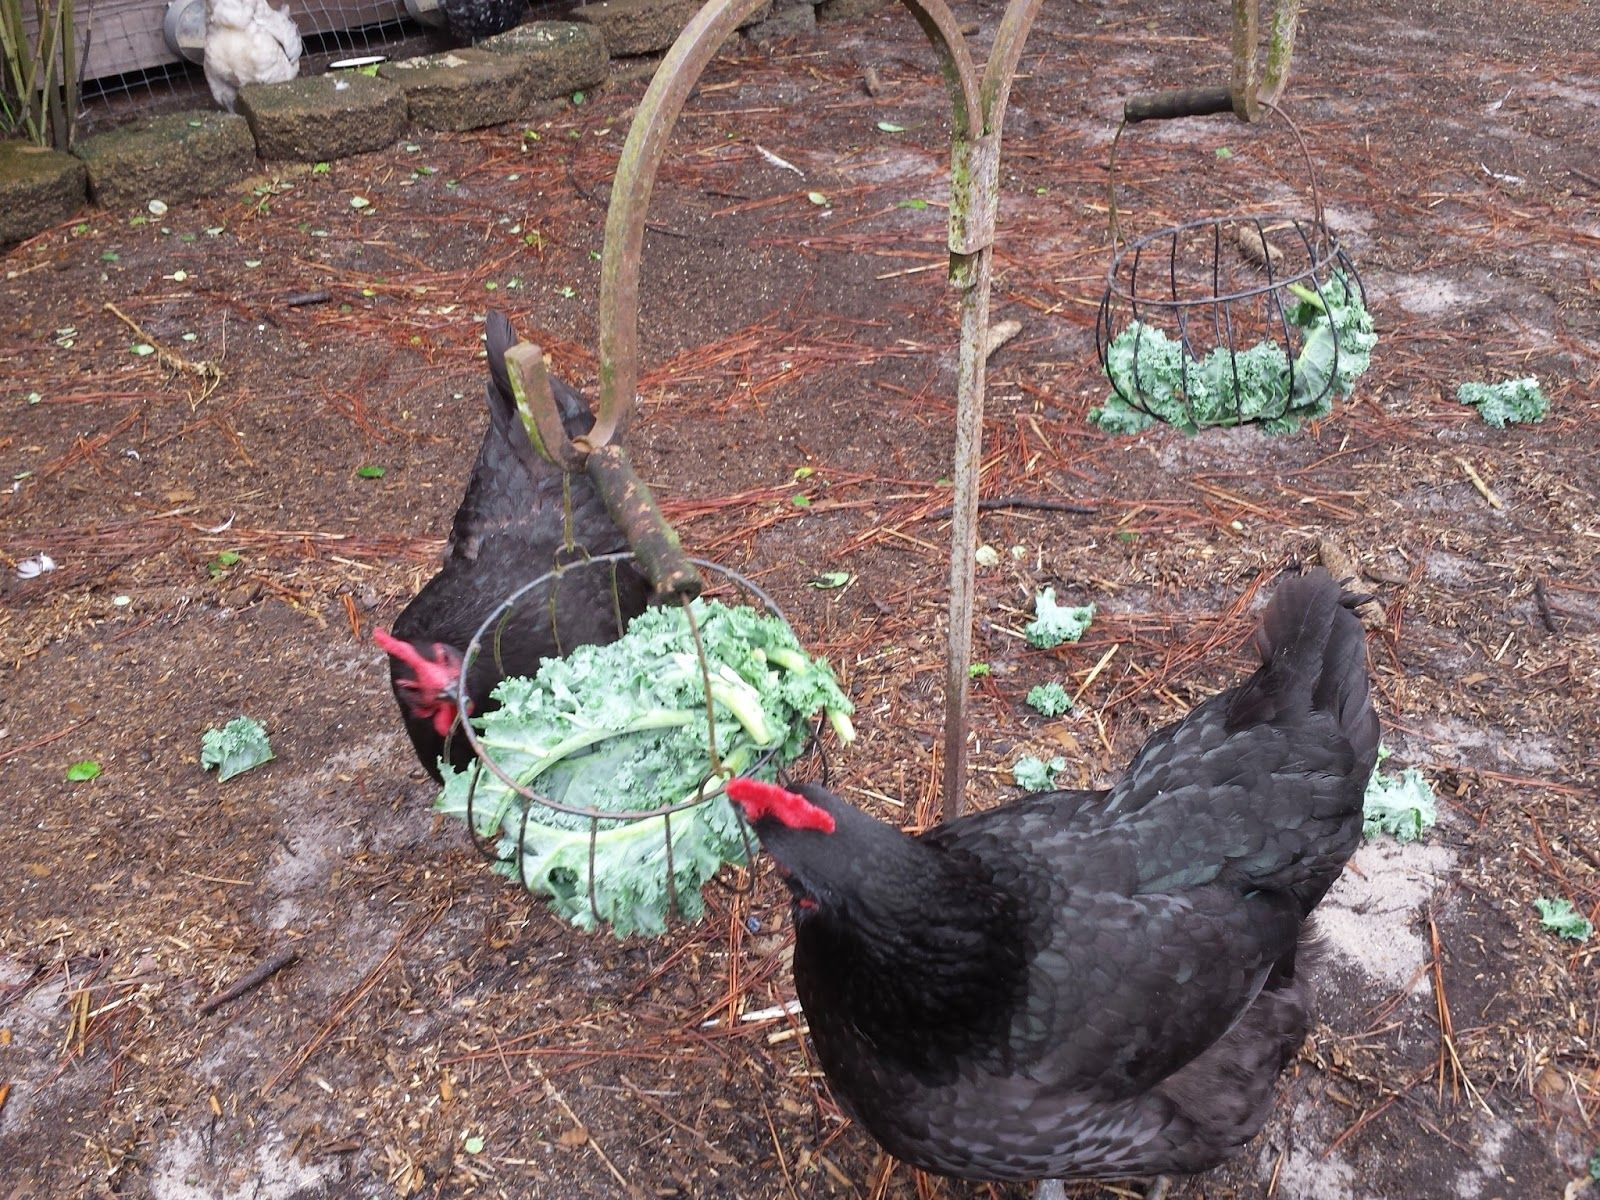 hang treats in baskets for your chickens winter crops such as